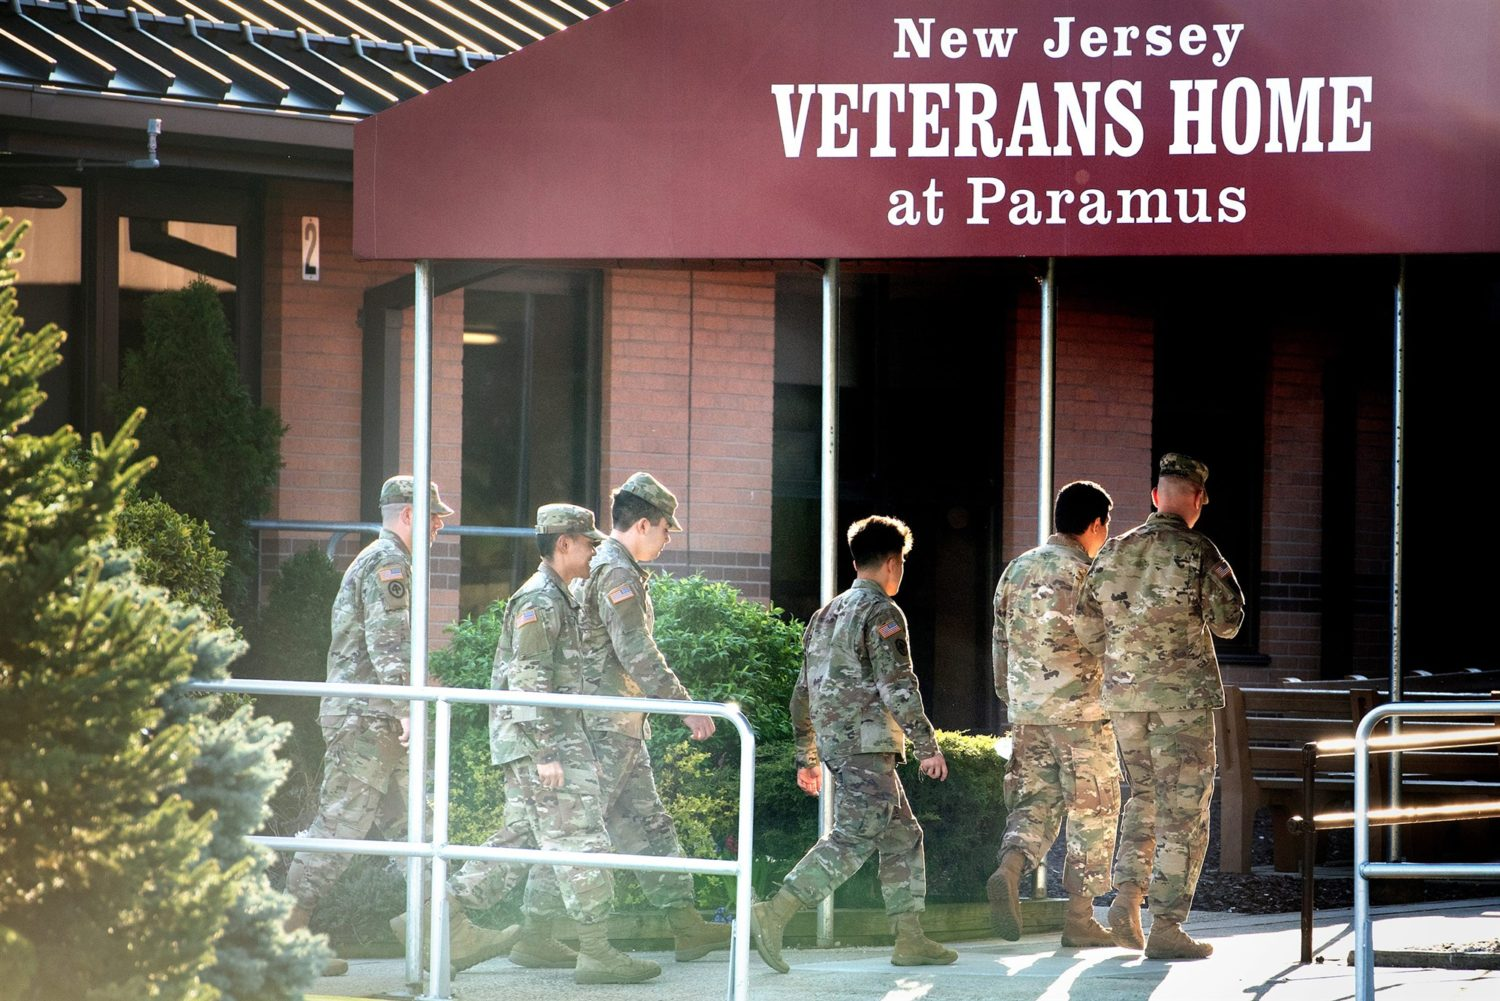 The New Jersey Veterans Home in Paramus on Wednesday, April 8, 2020